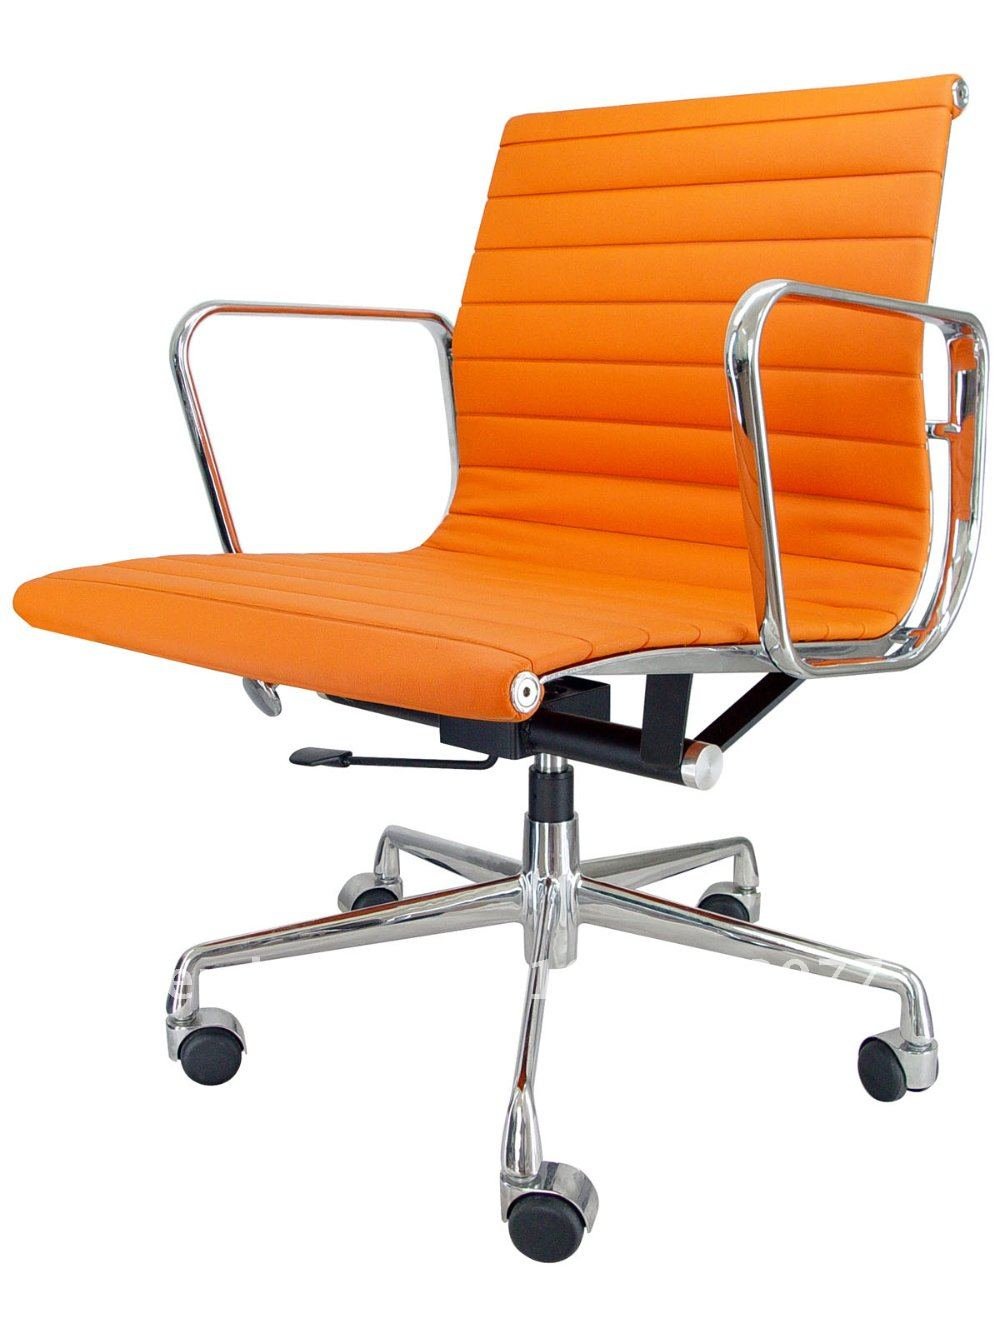 Eames Desk Chair Us 53 6 Eames Office Lounge Chair In Office Chairs From Furniture On Aliexpress Alibaba Group